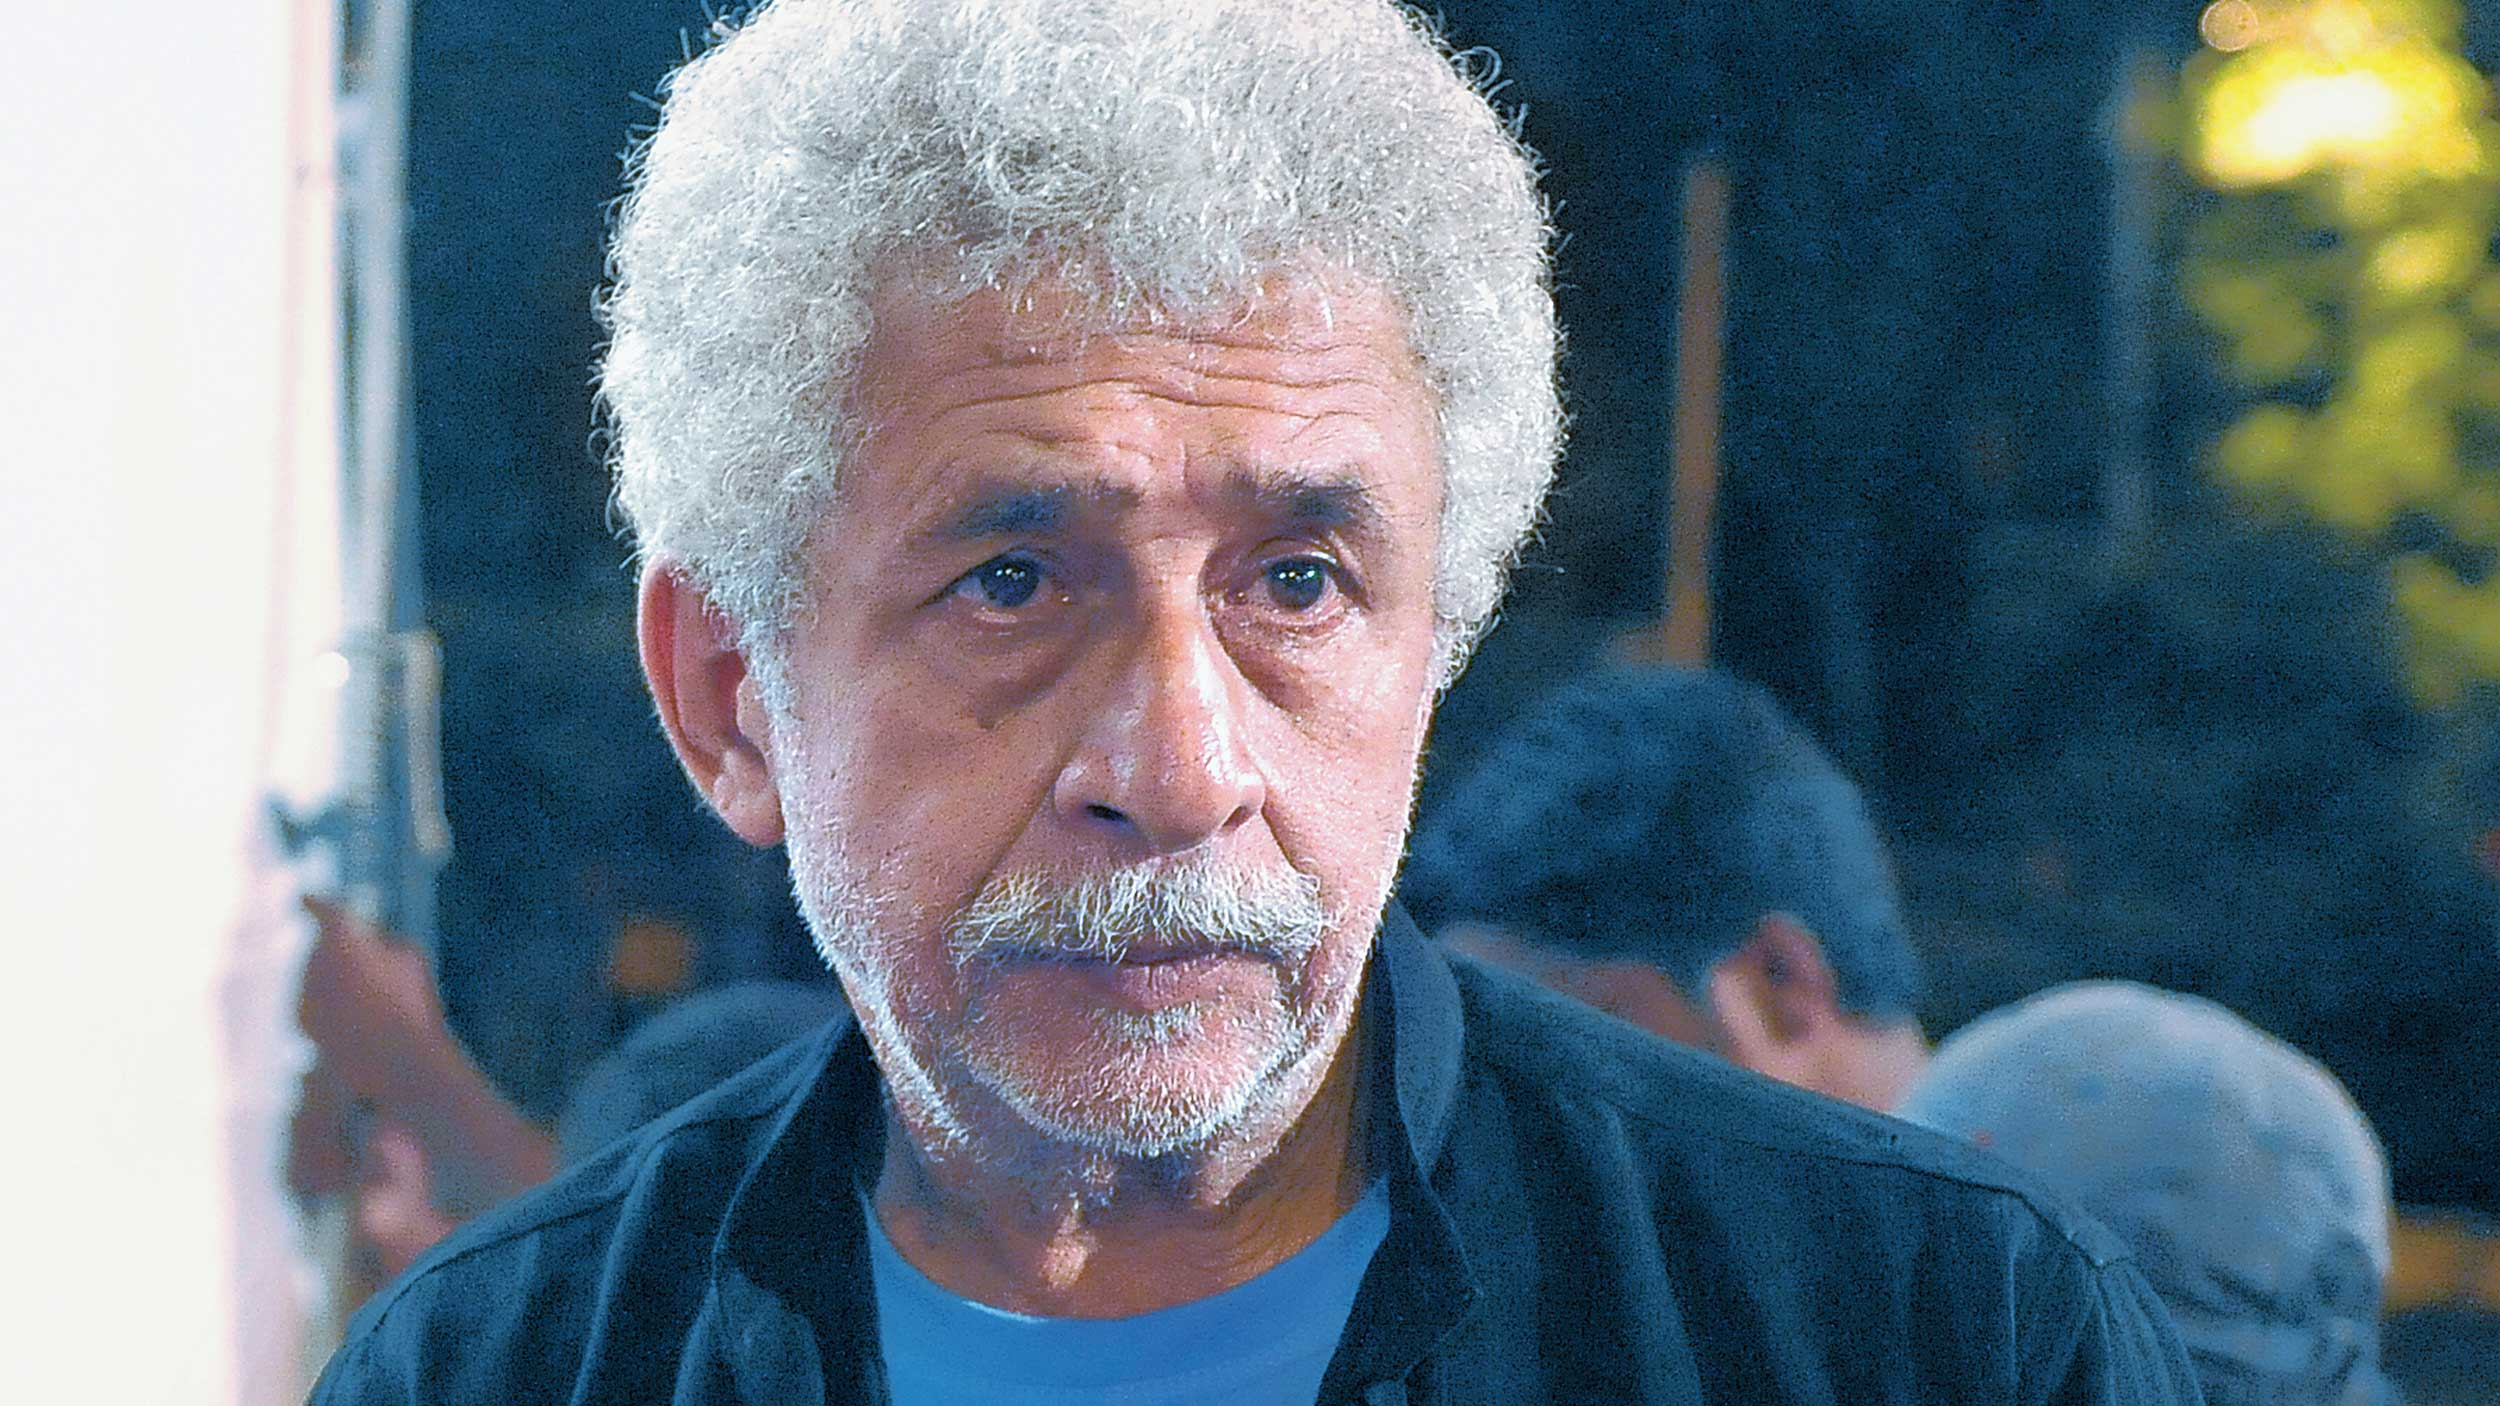 Naseeruddin Shah, who was in conversation with actor Anand Tiwari at the India Film Project, was responding to a question if his views have affected his ties with film fraternity.